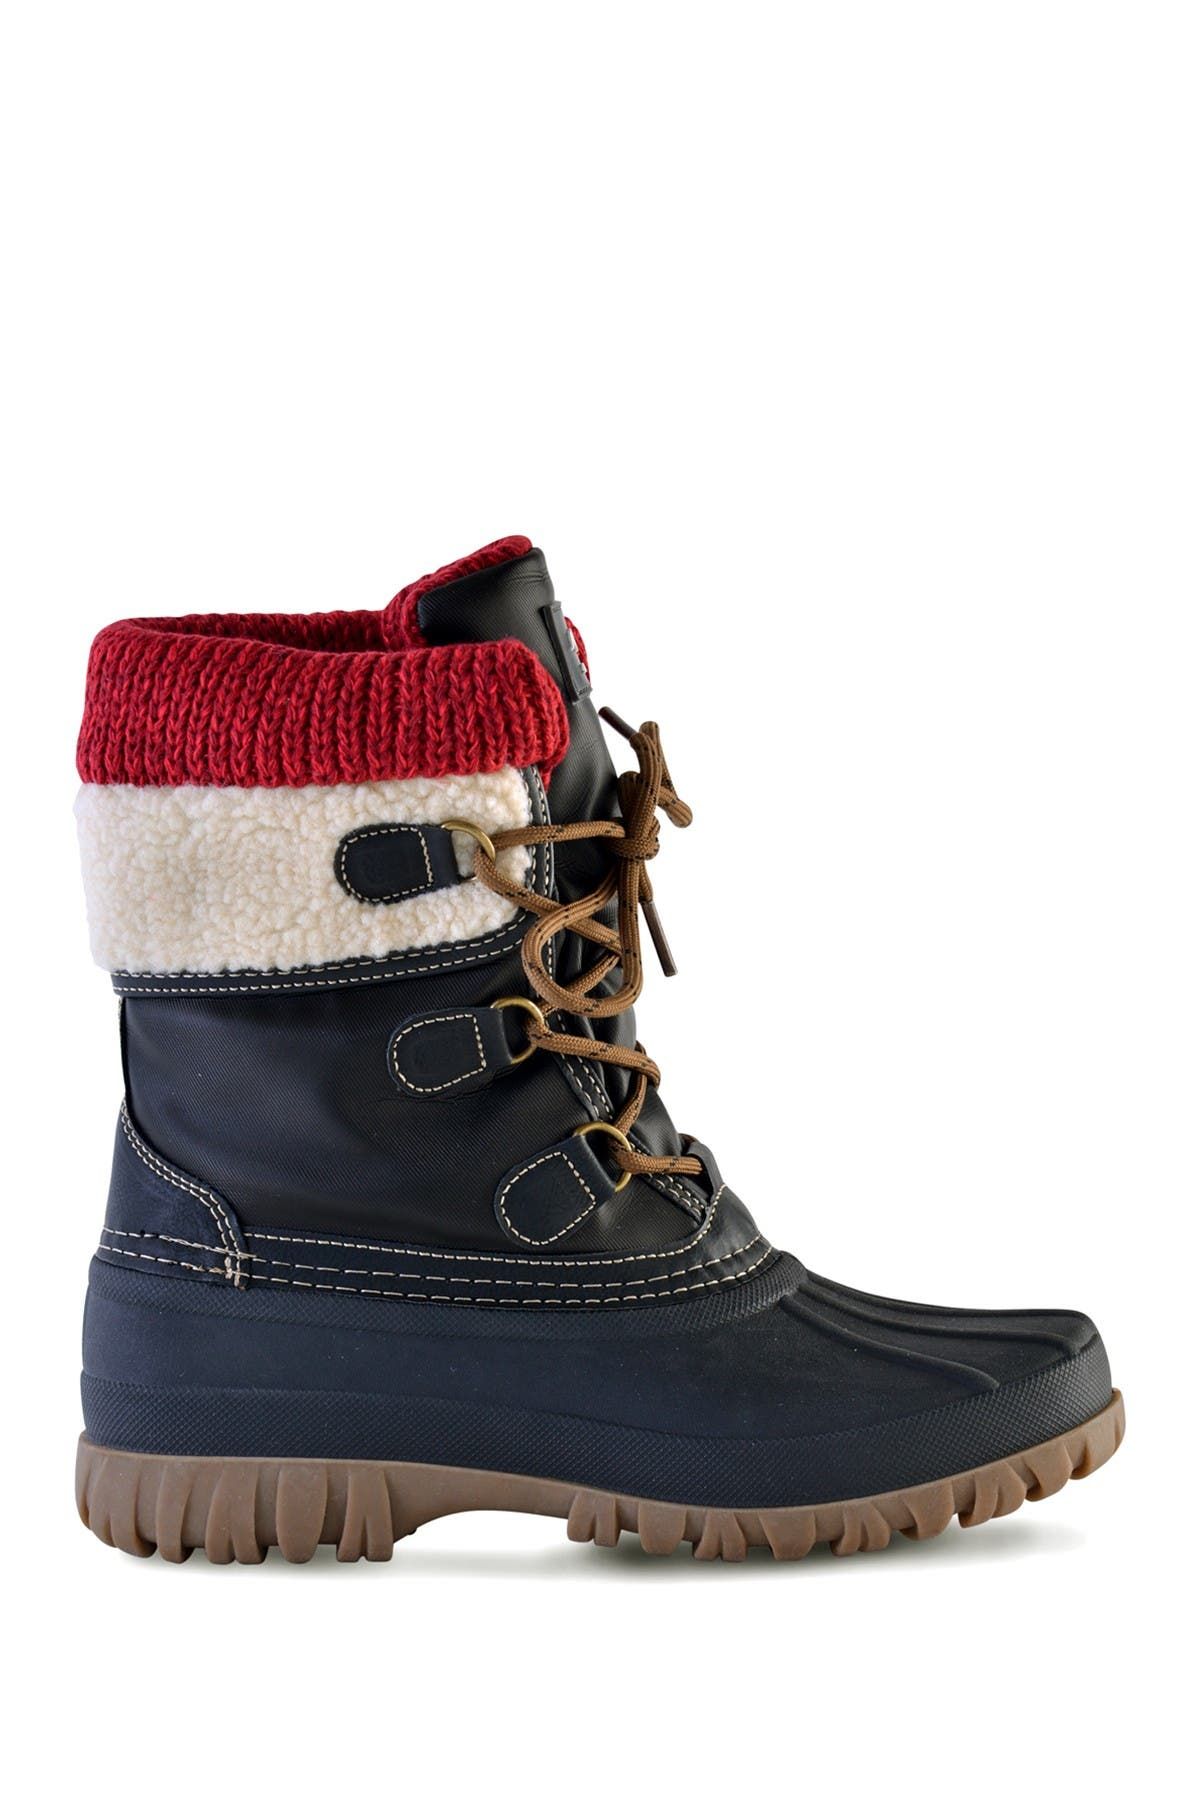 Image of Cougar Cove Faux Shearling Snow Boot